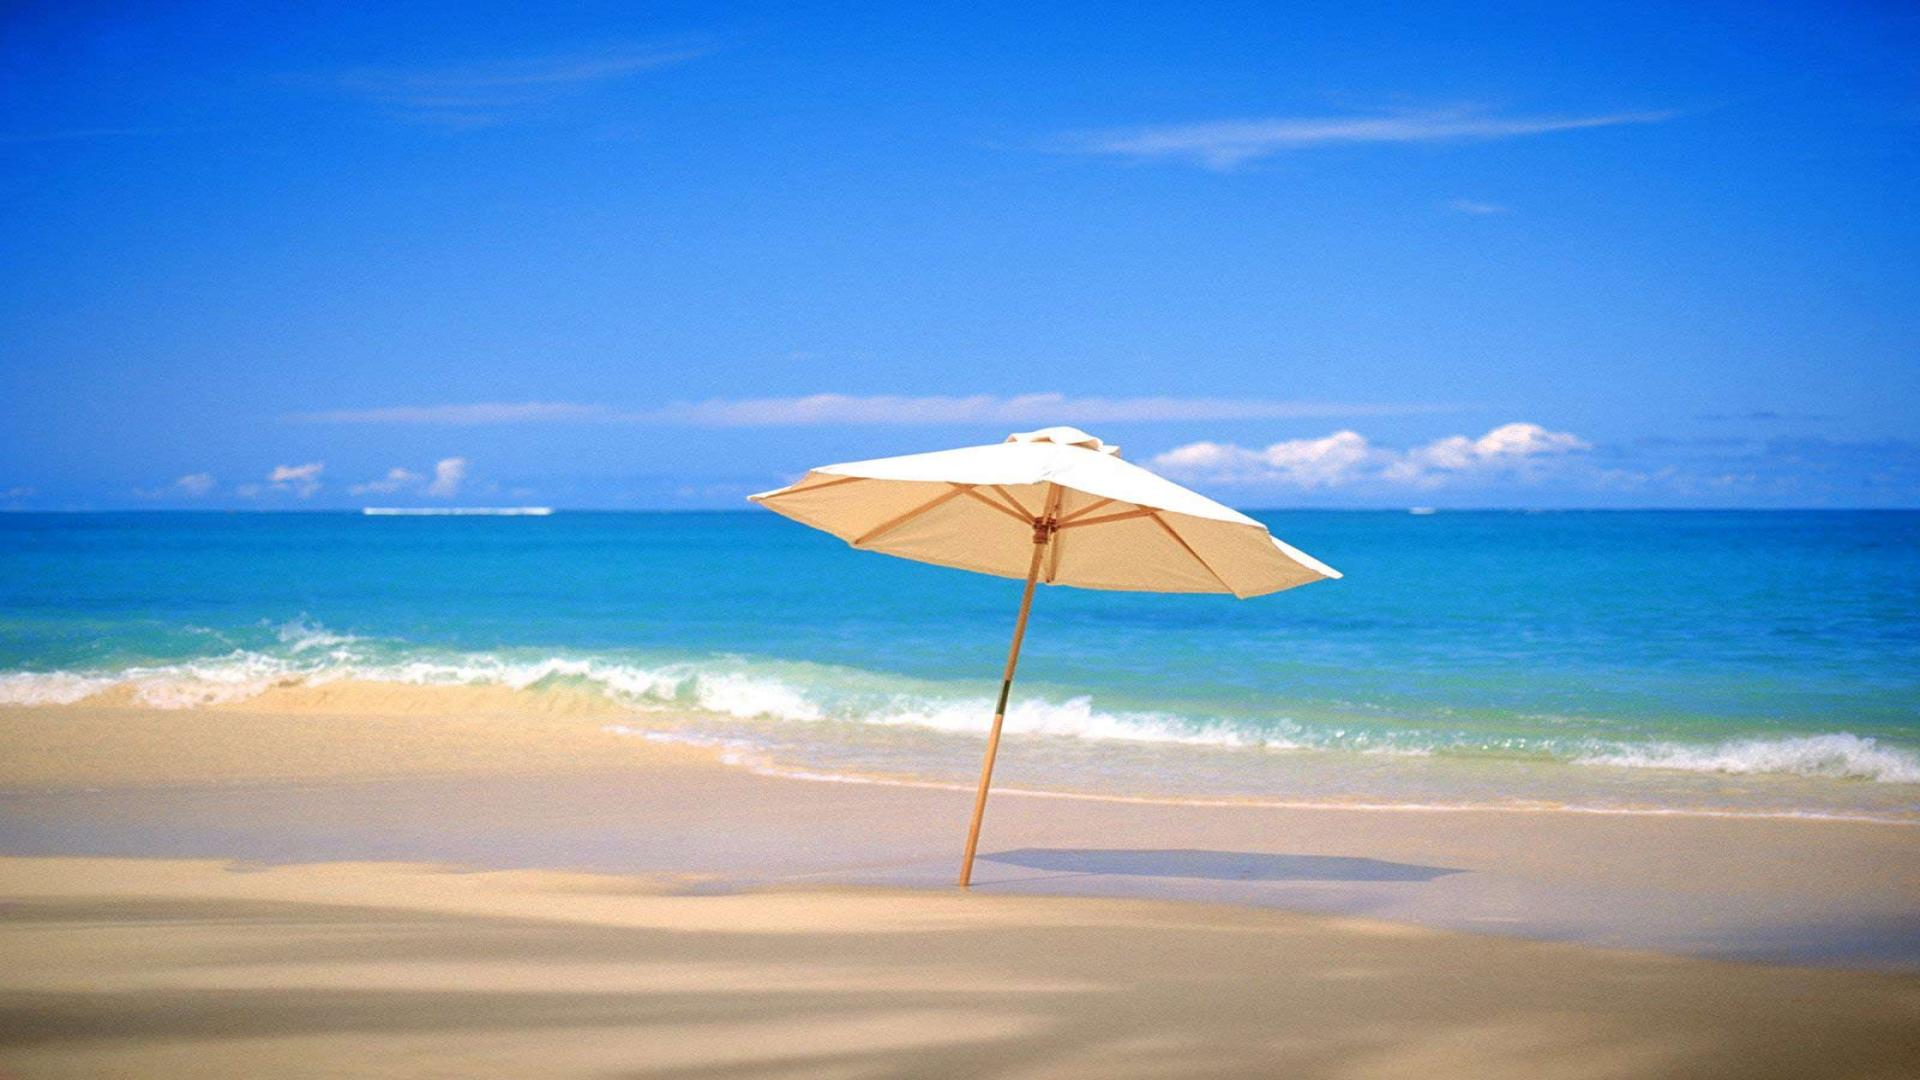 Best Beach 2013 Images HD Wallpaper 1920x1080